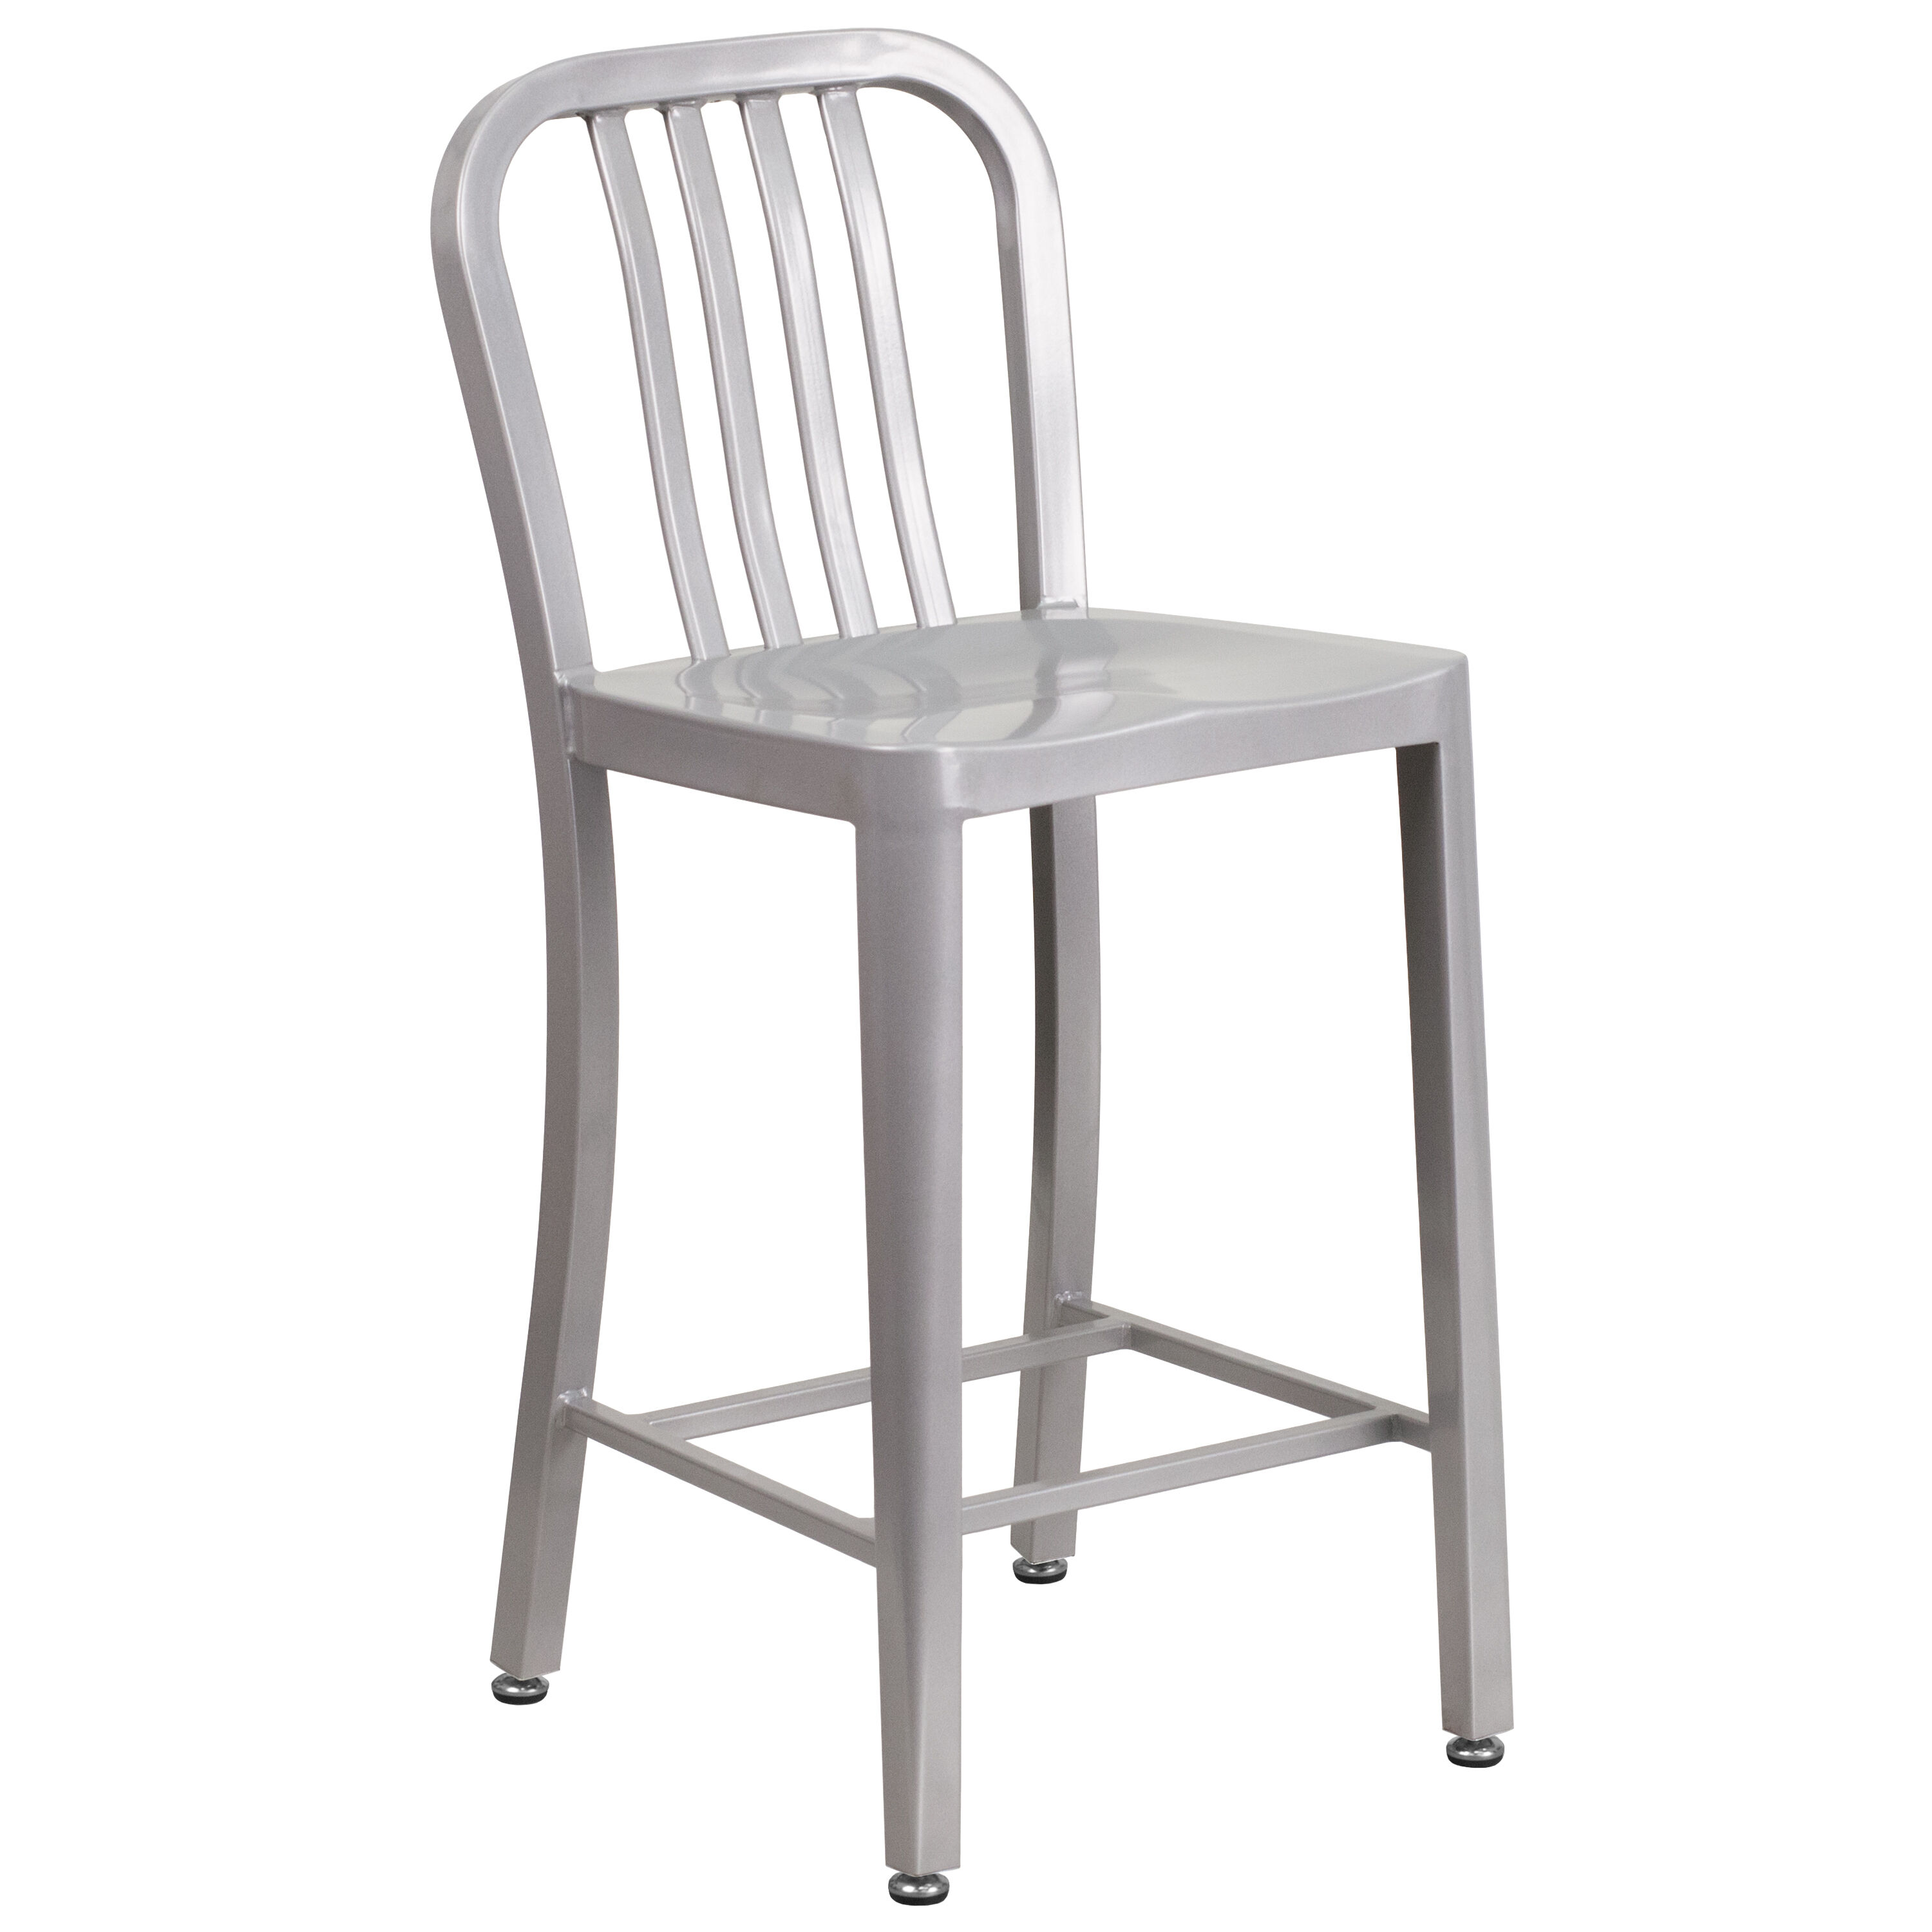 24 Silver Metal Outdoor Stool Ch 61200 24 Sil Gg